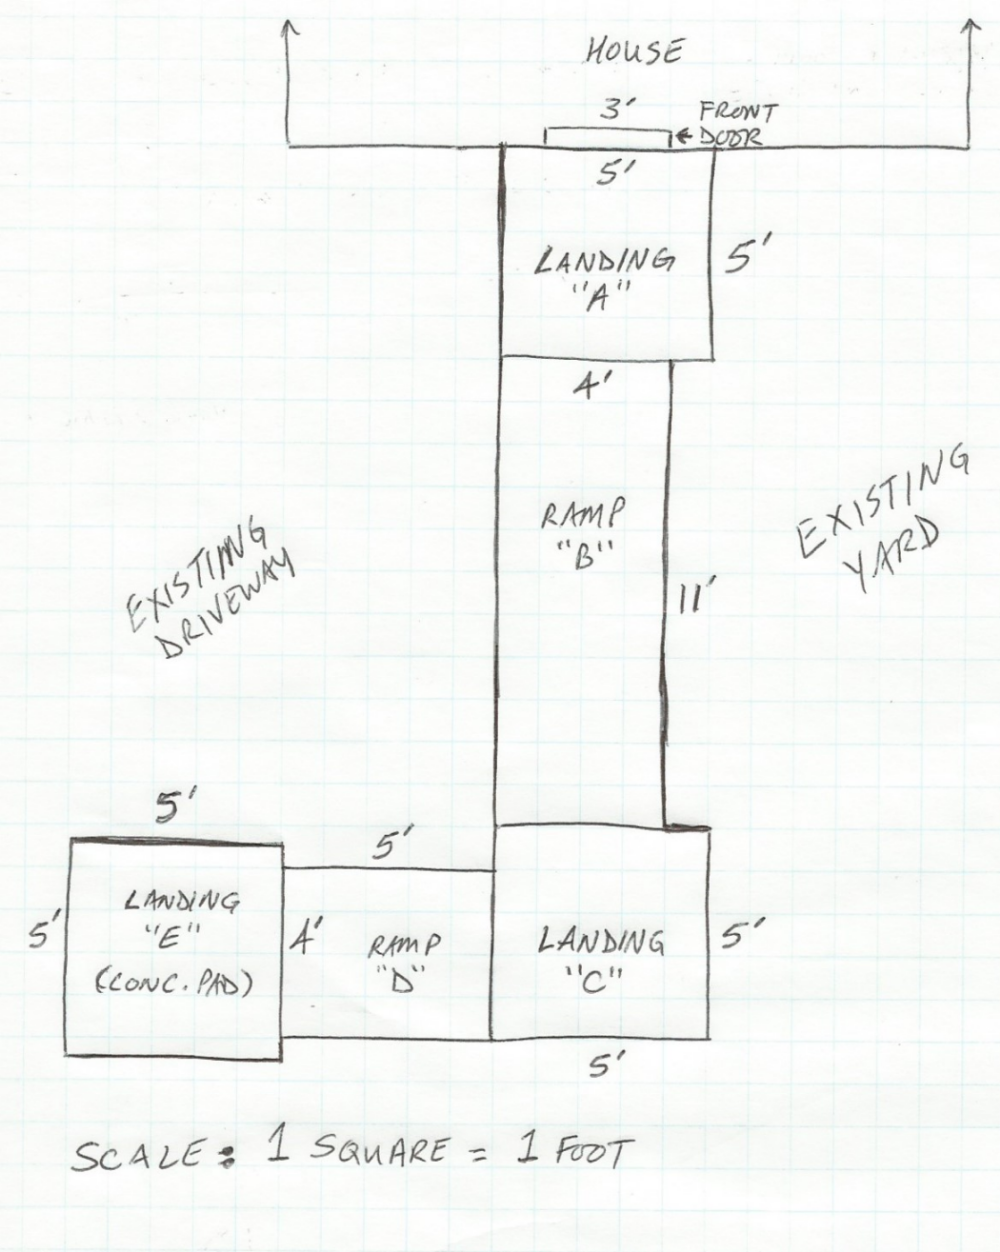 A recent ramp plan to enable a wheelchair bound client to return home to be with her family.